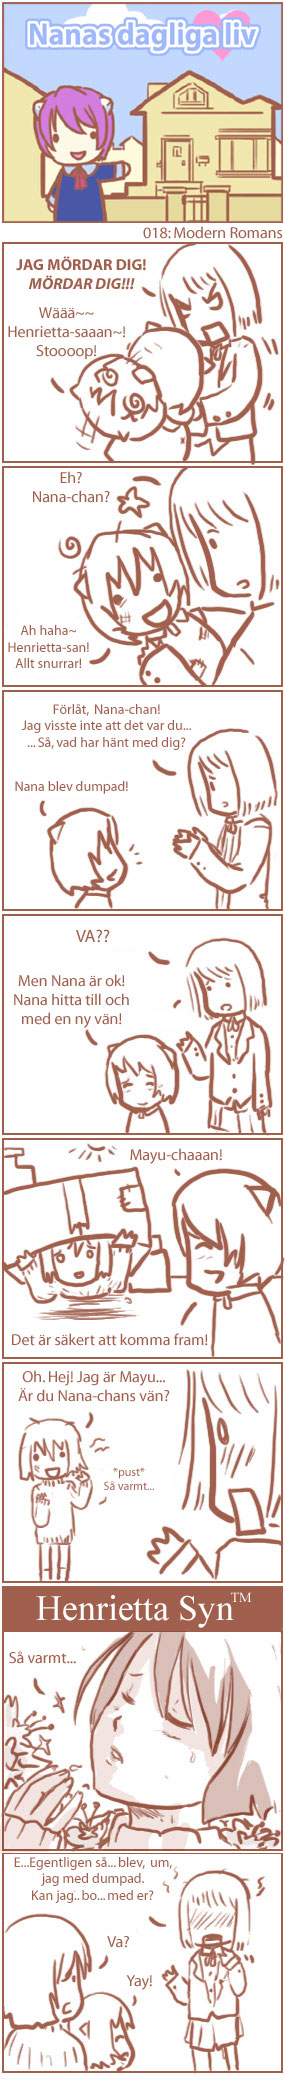 [Nana's Everyday Life - strip 18]